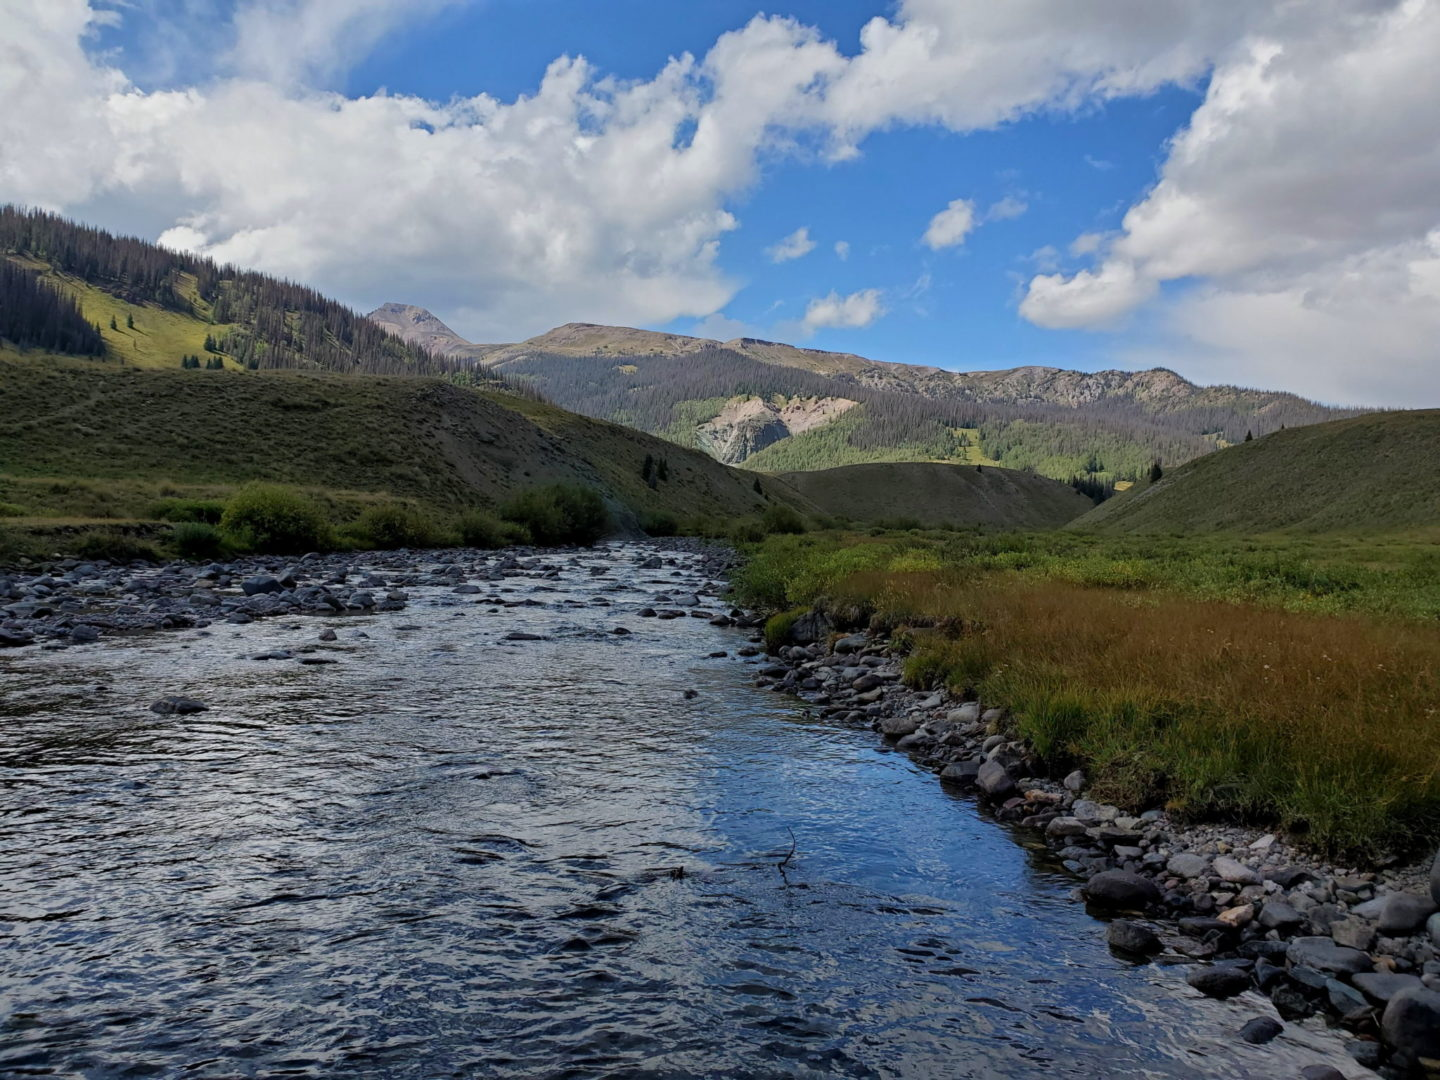 Crossing the Rio Grande River headwaters